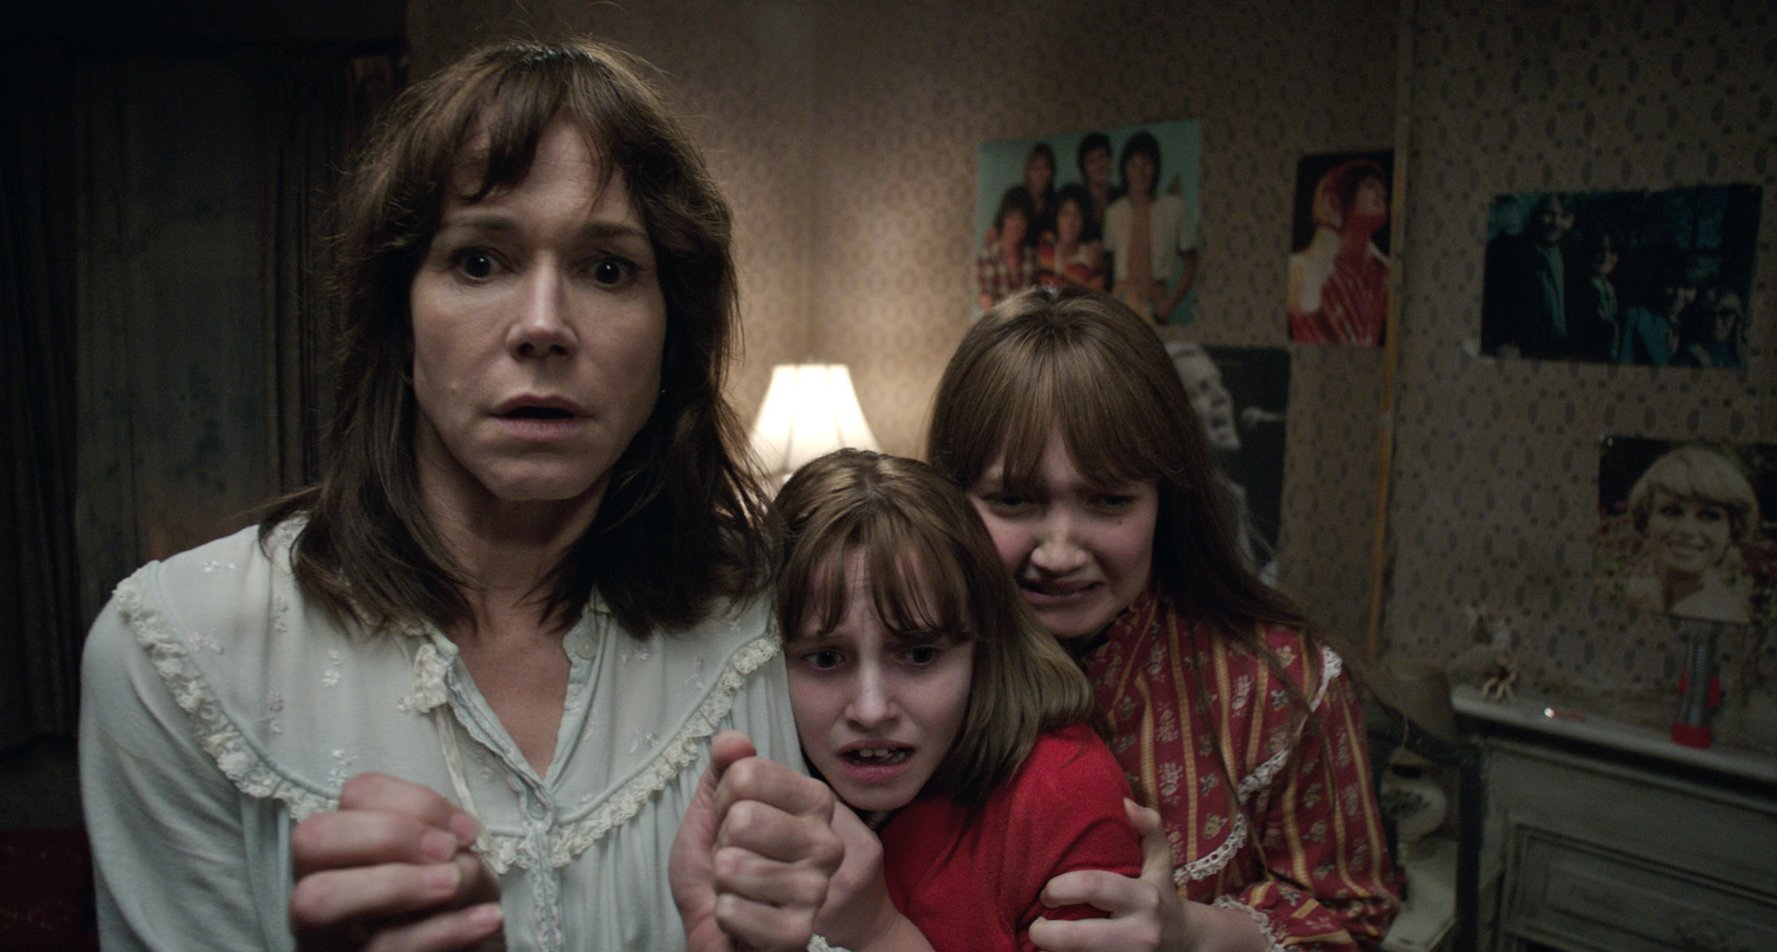 conjuring 2 download sub indo